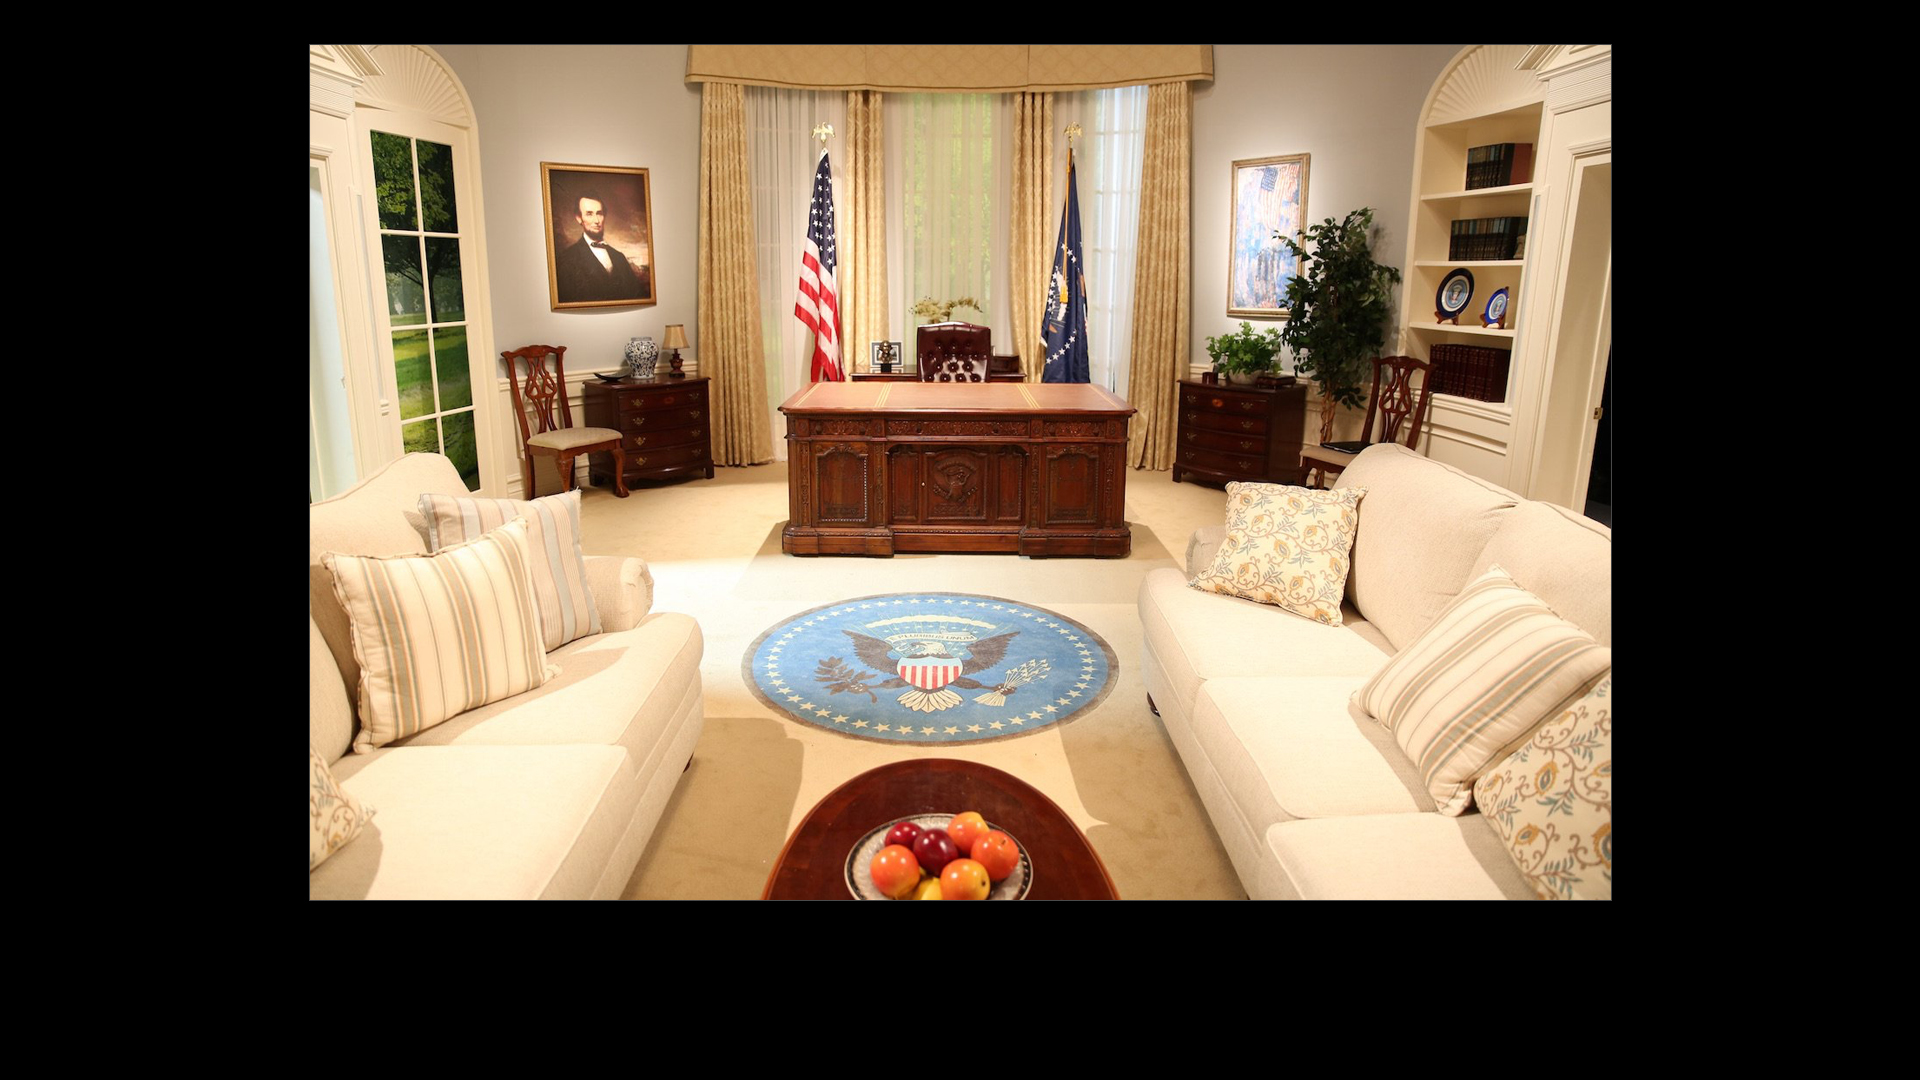 Google - Oval Office Experience -